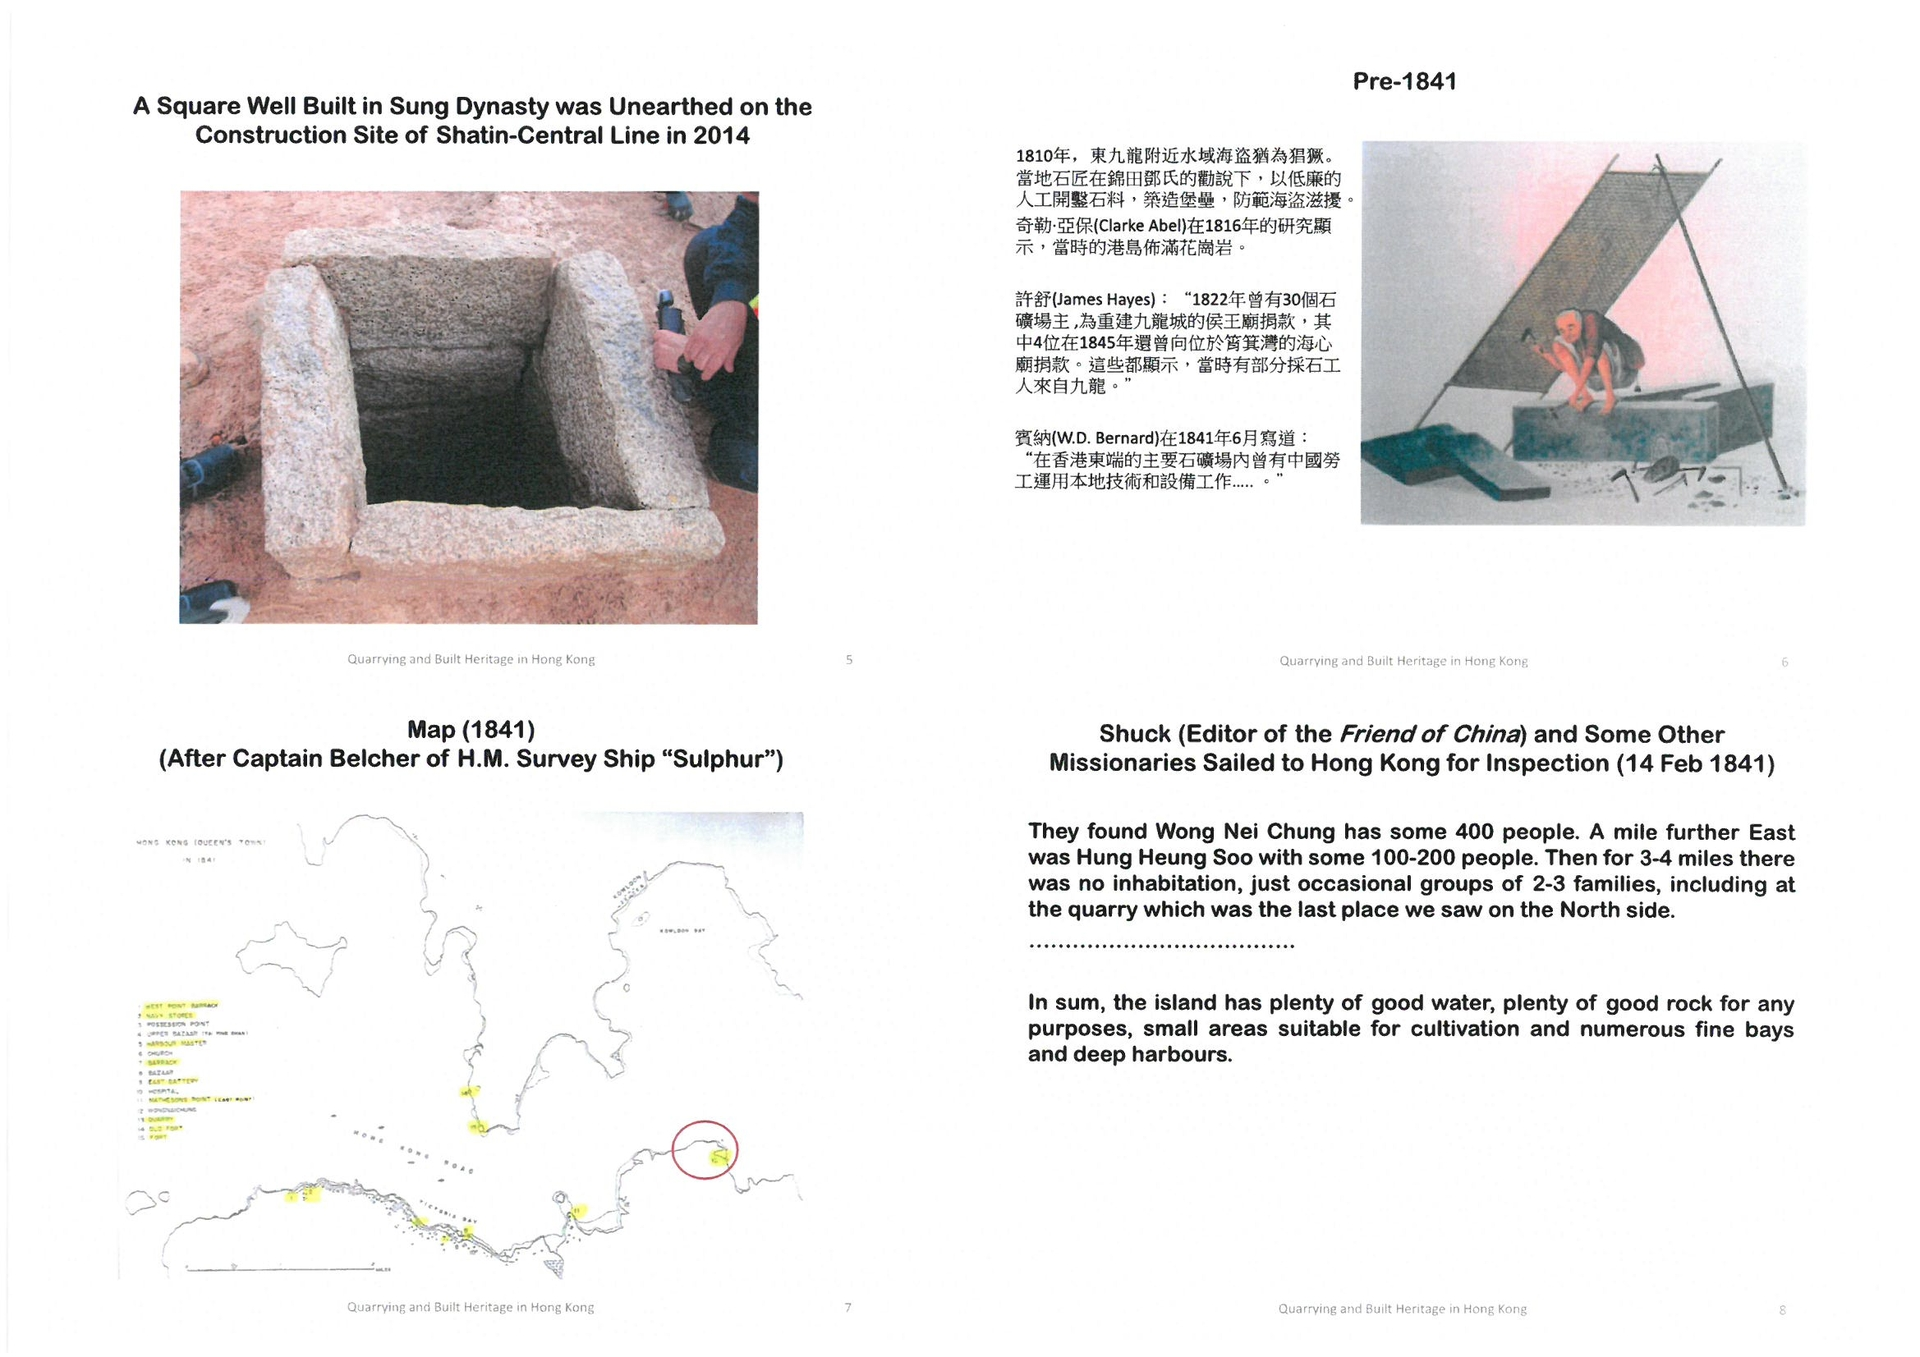 Quarrying and Built Heritage in Hong Kong (1841-1941)